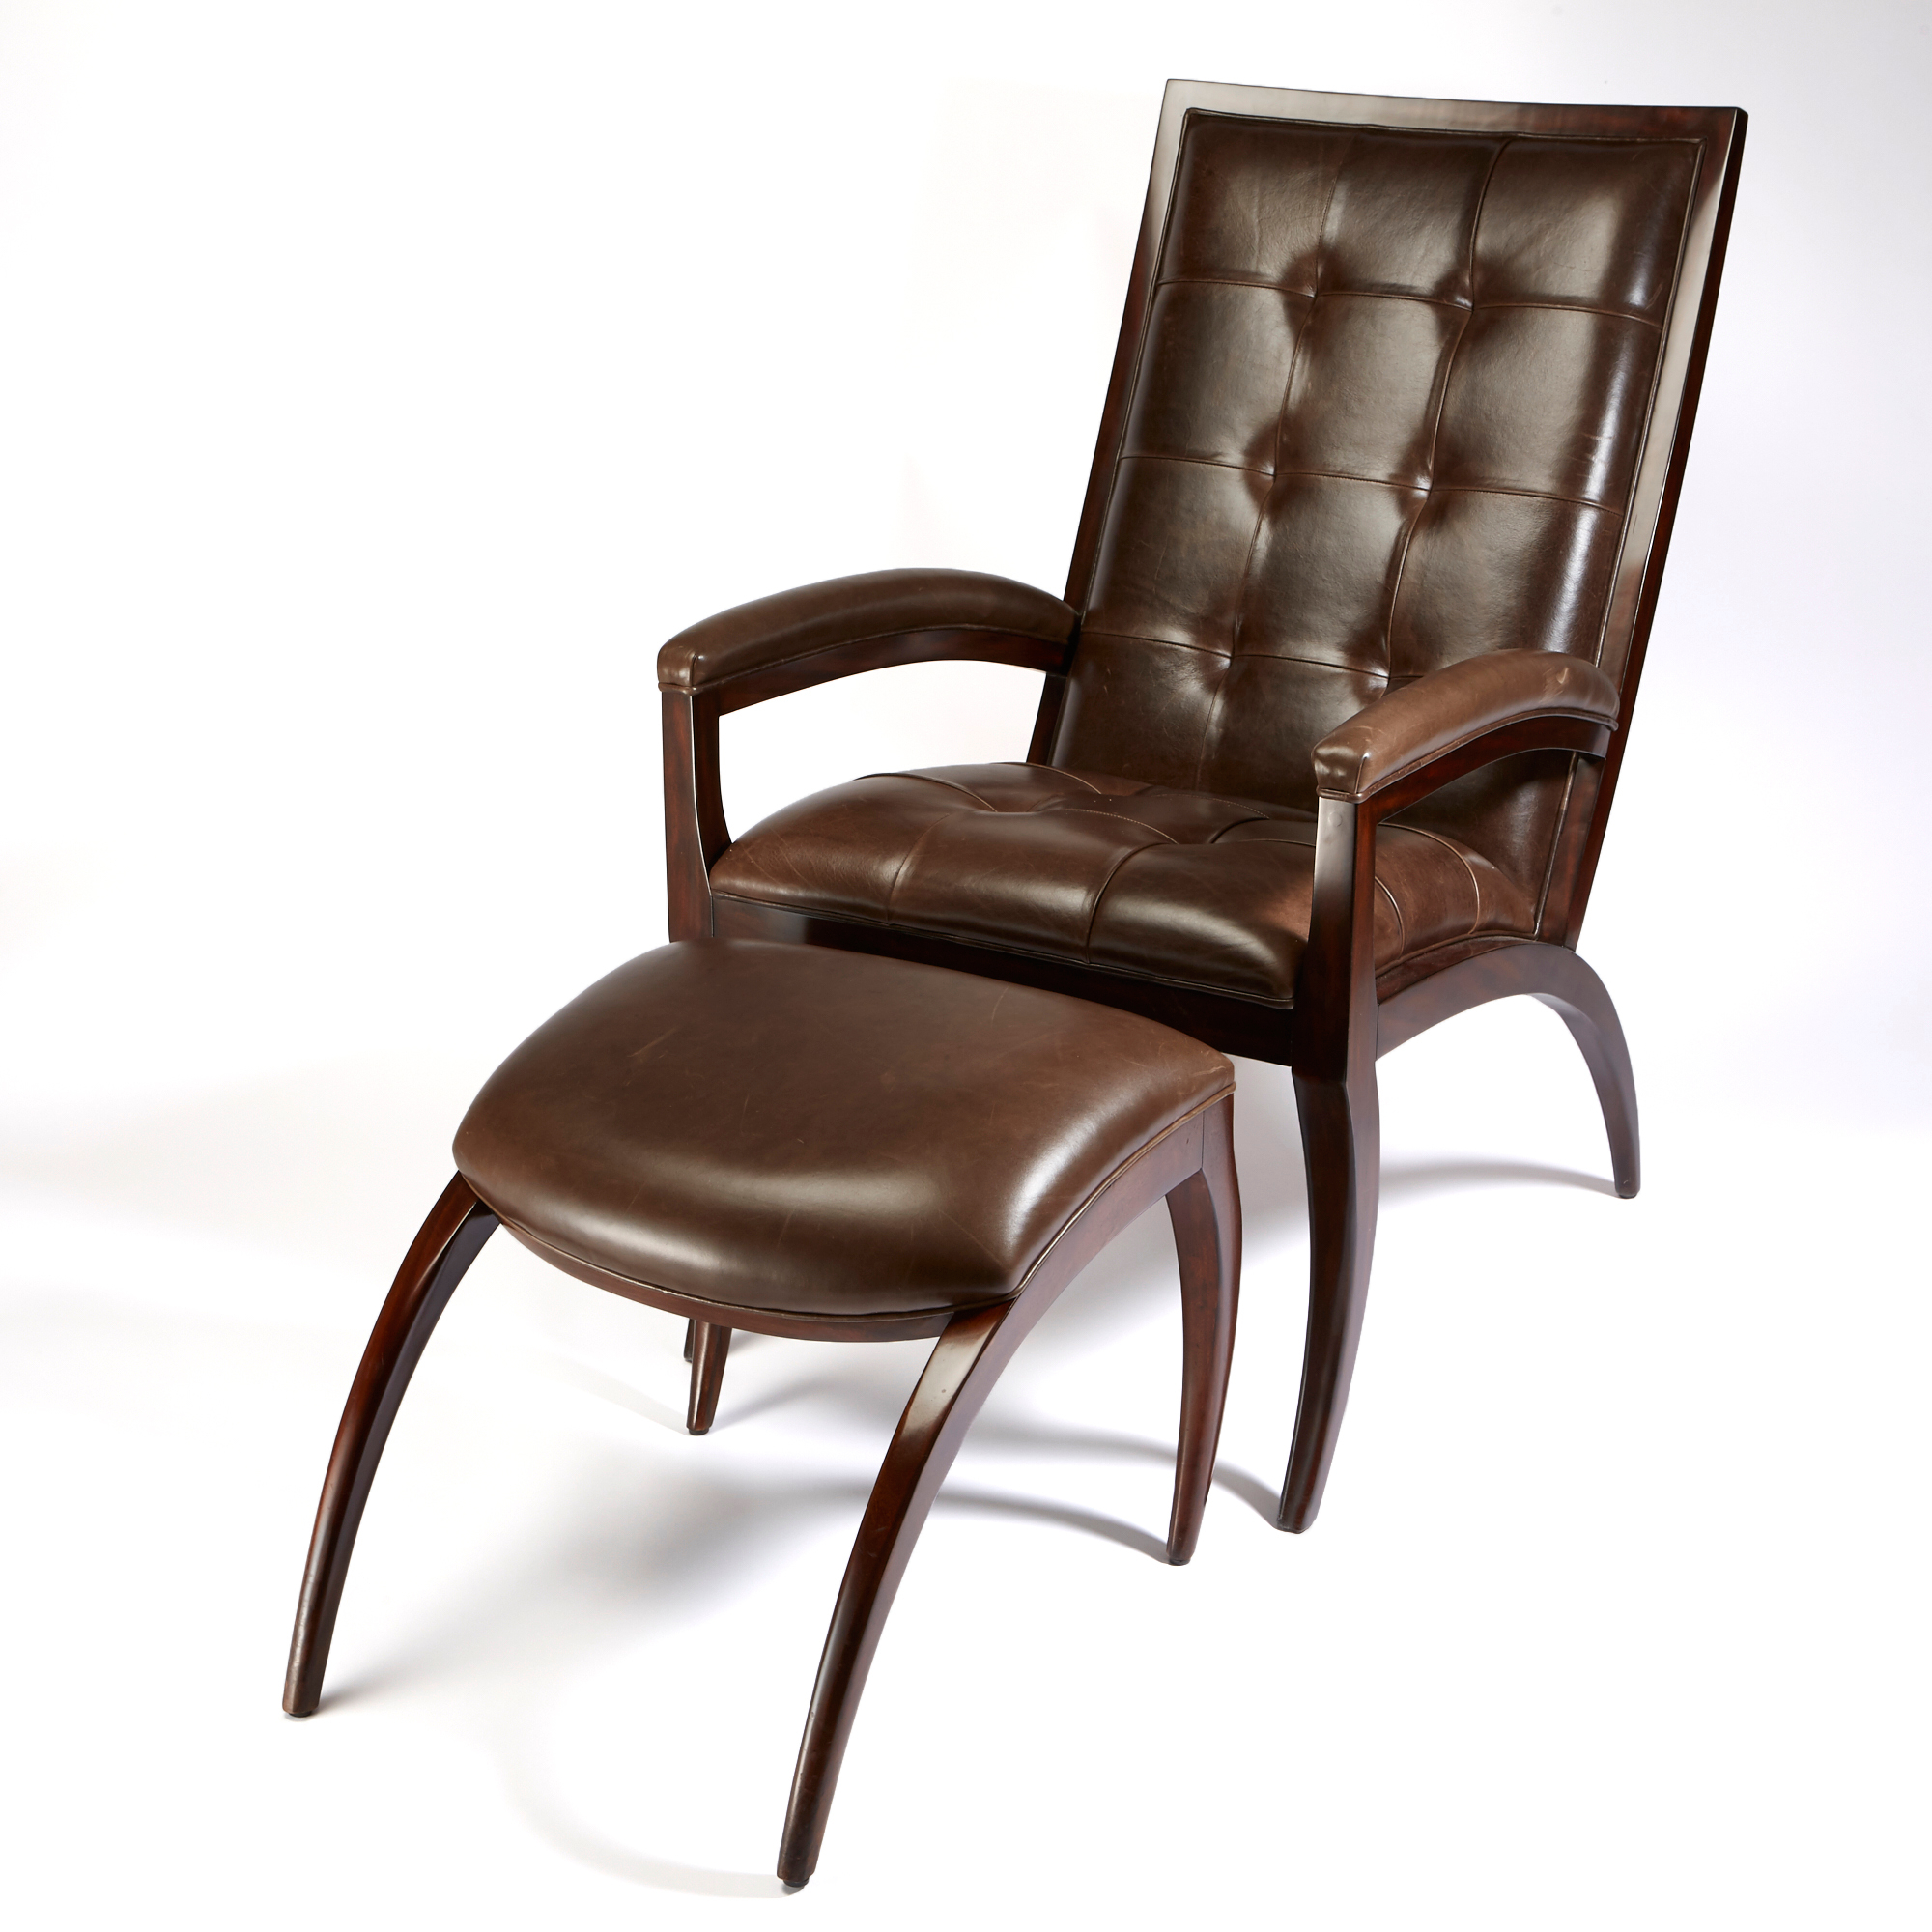 Bradley Leather Chair & Ottoman Set